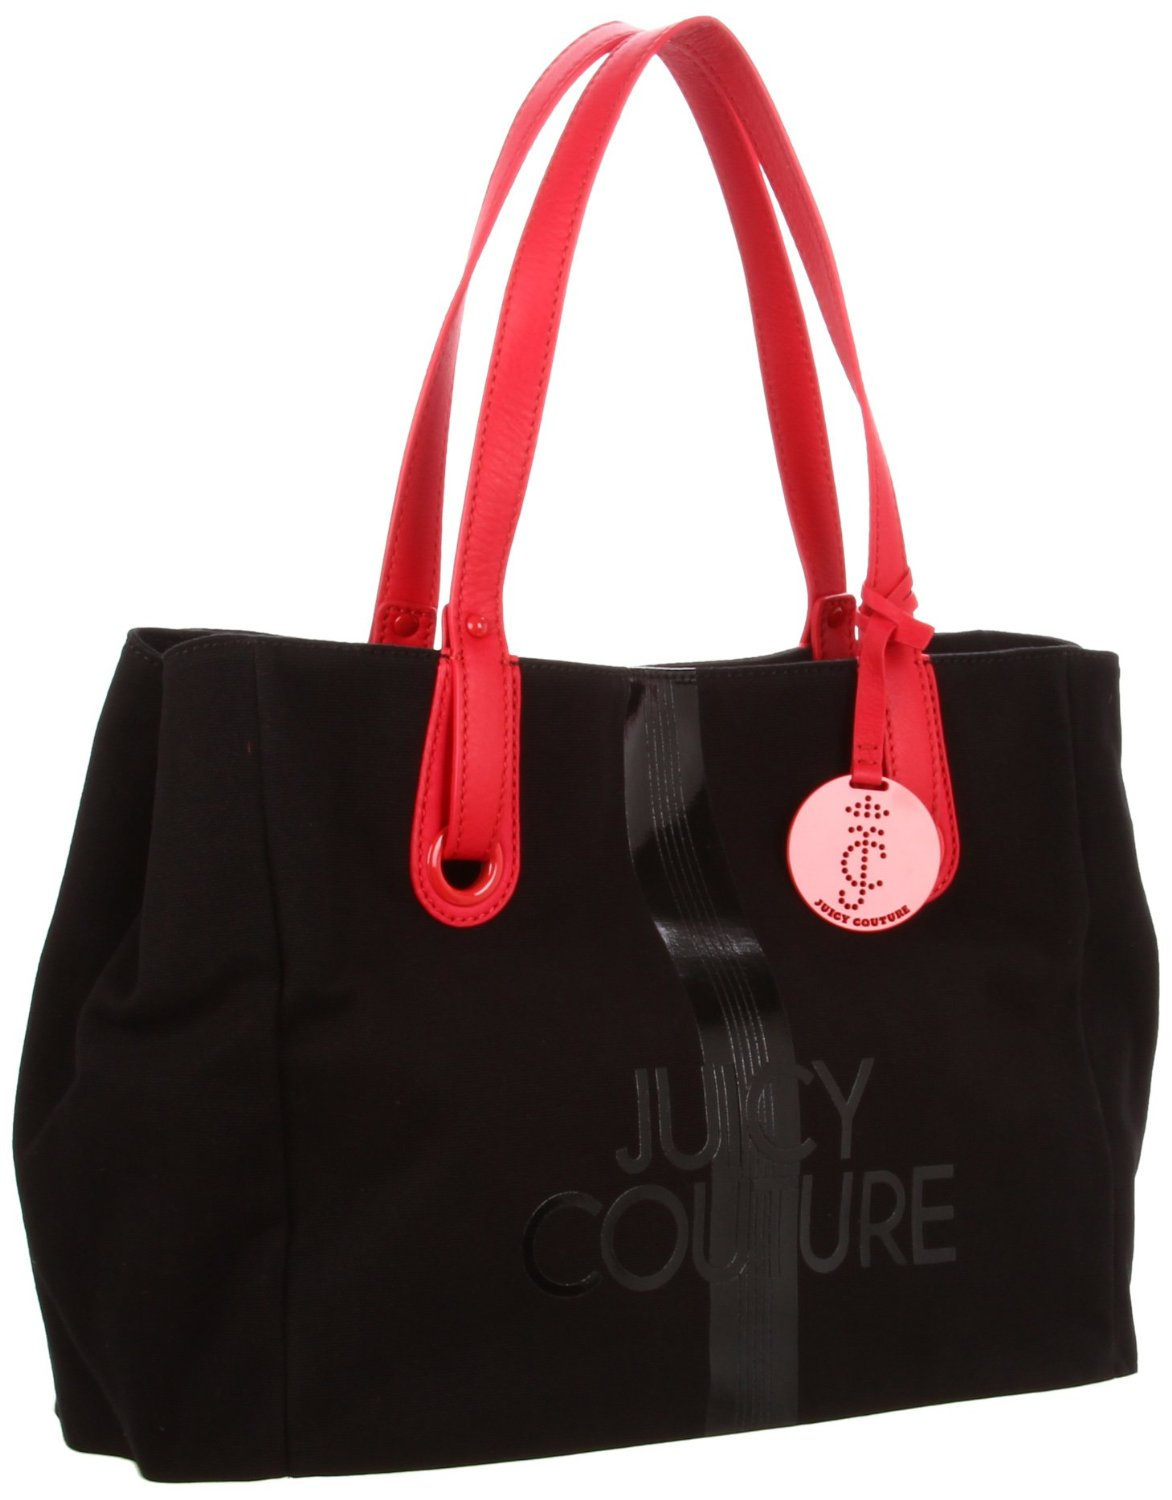 juicy couture juicy couture ever tote in black angel black lyst. Black Bedroom Furniture Sets. Home Design Ideas